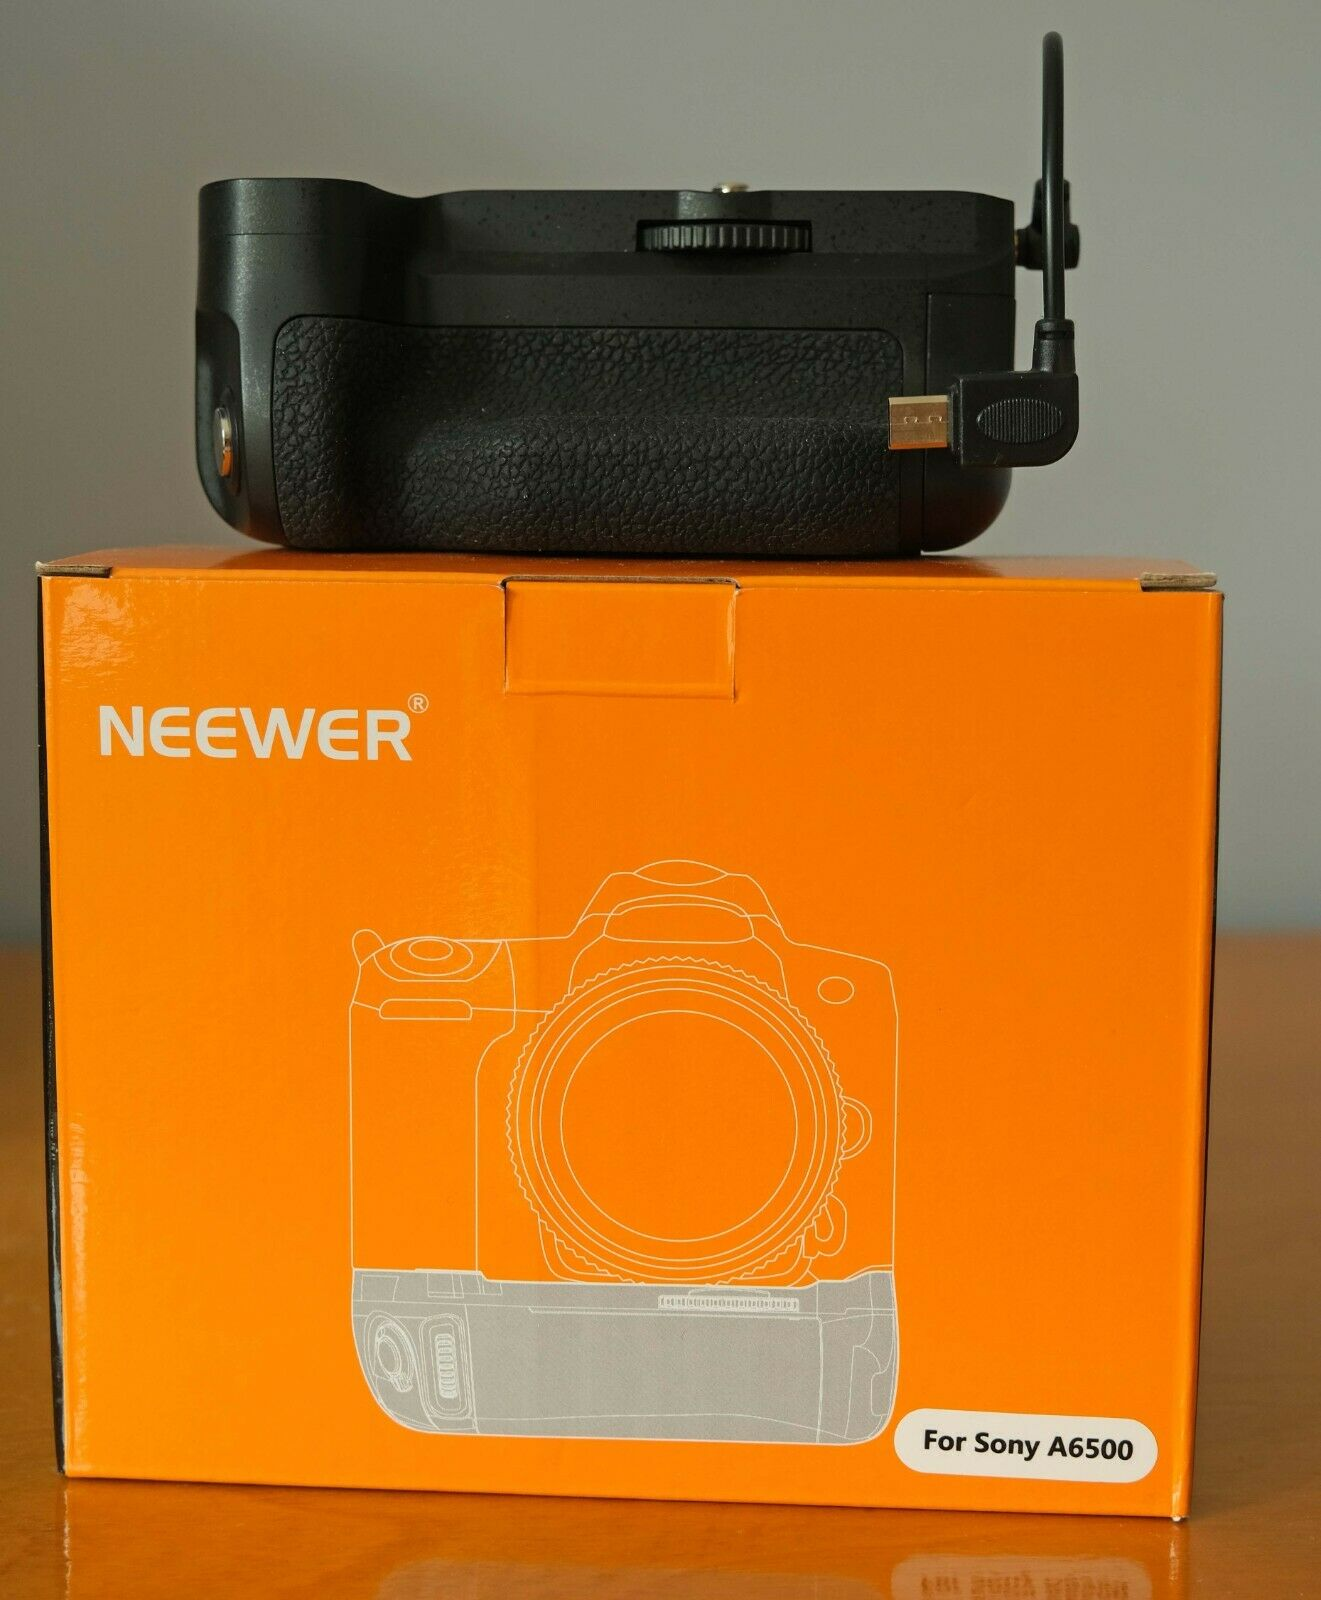 Sony A6500 Battery Grip by Neewer, specifically for this camera.